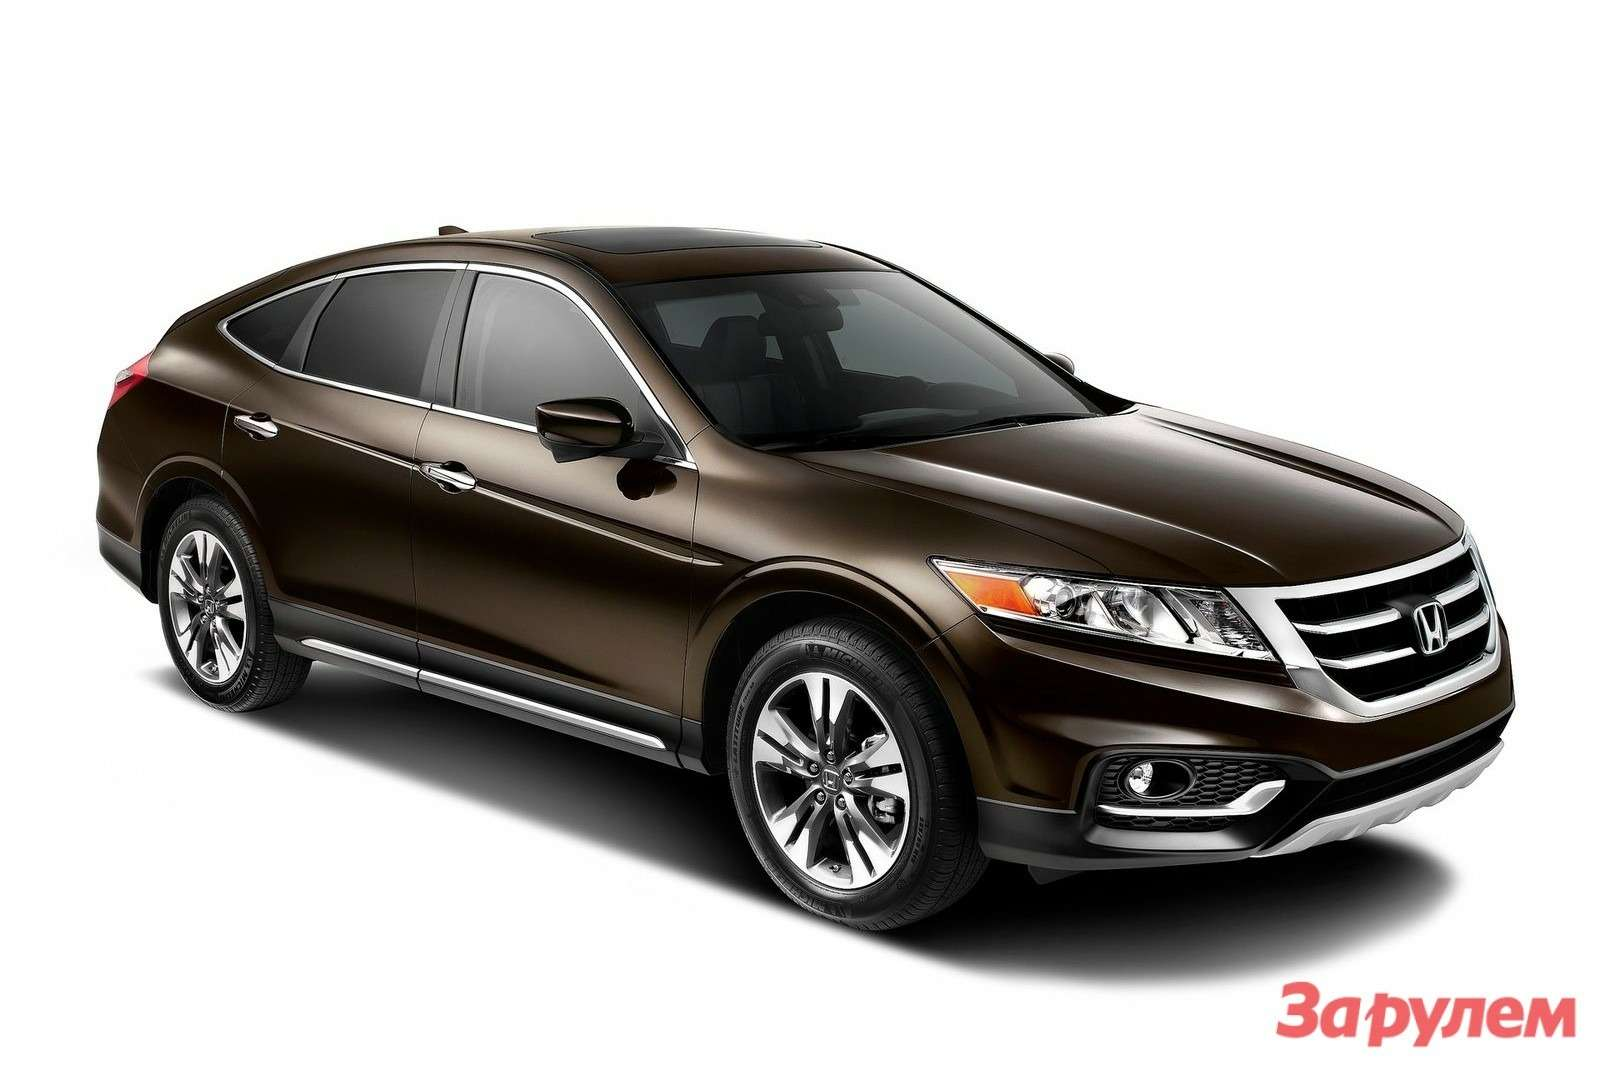 2013 MY Honda Crosstour side-front view